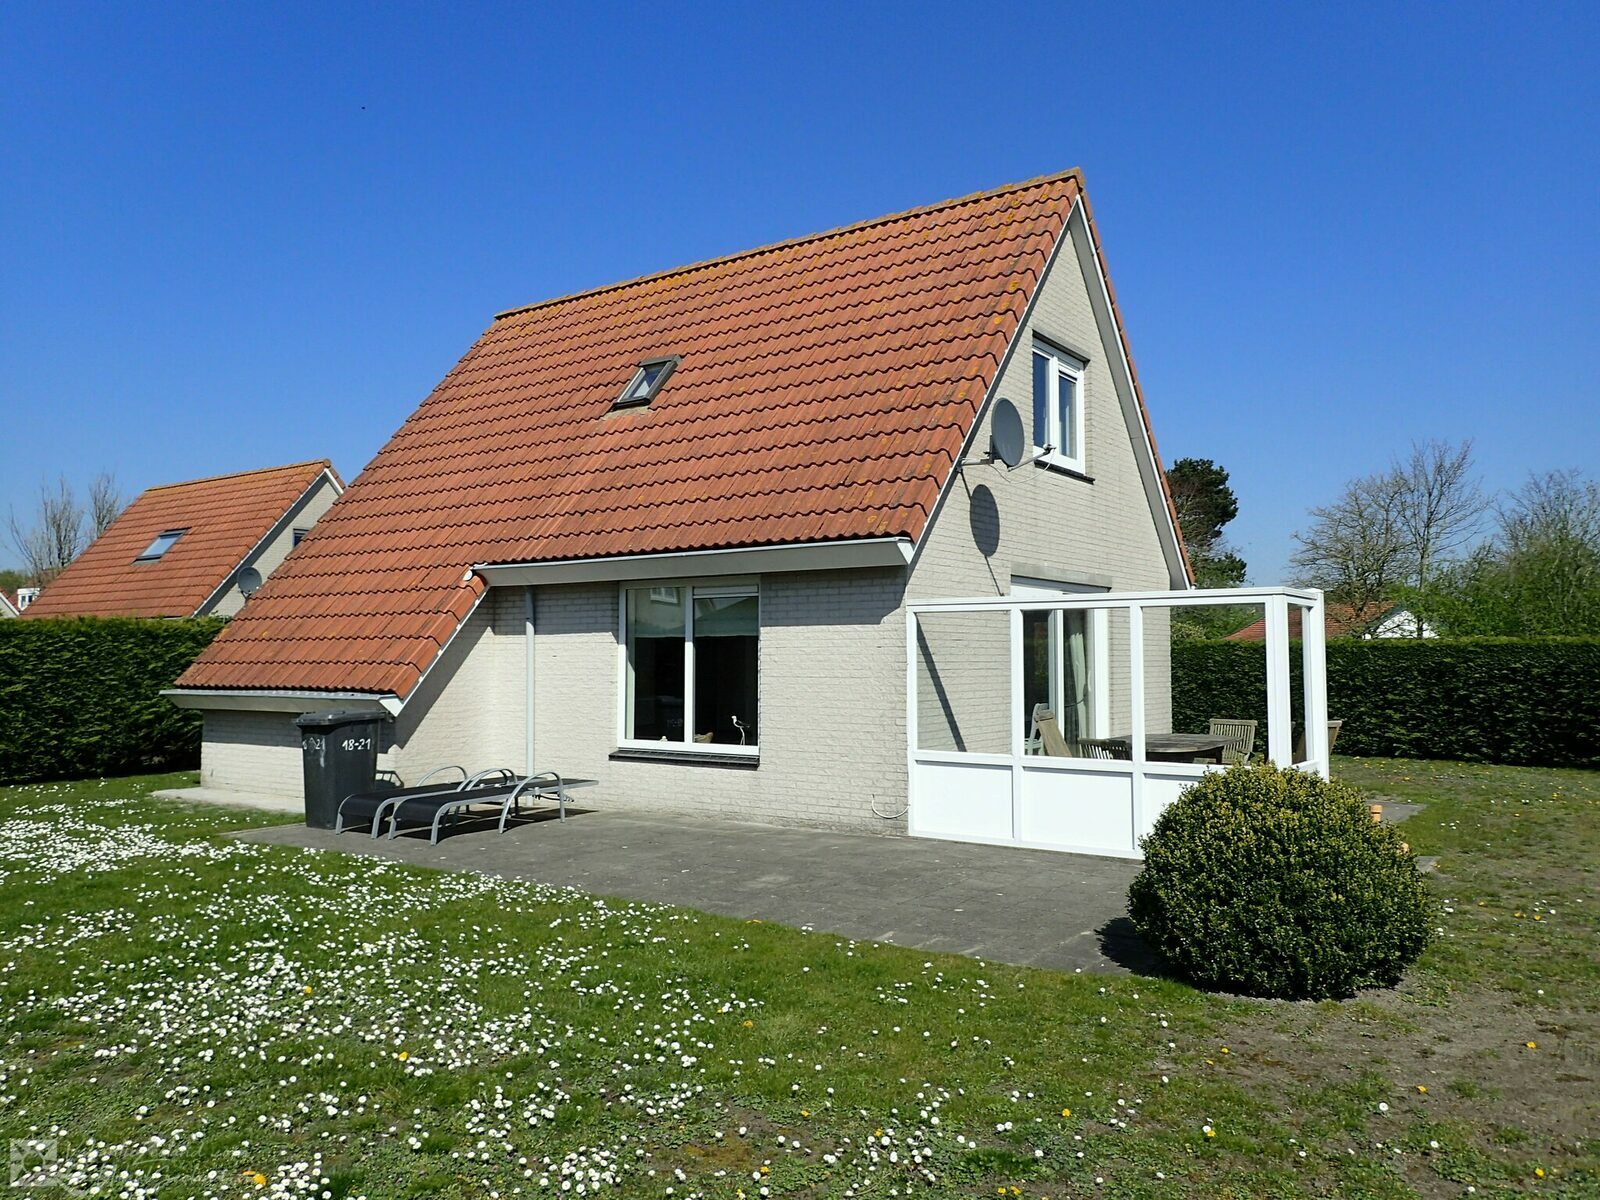 VZ921 Ferienhaus in Cadzand-Bad